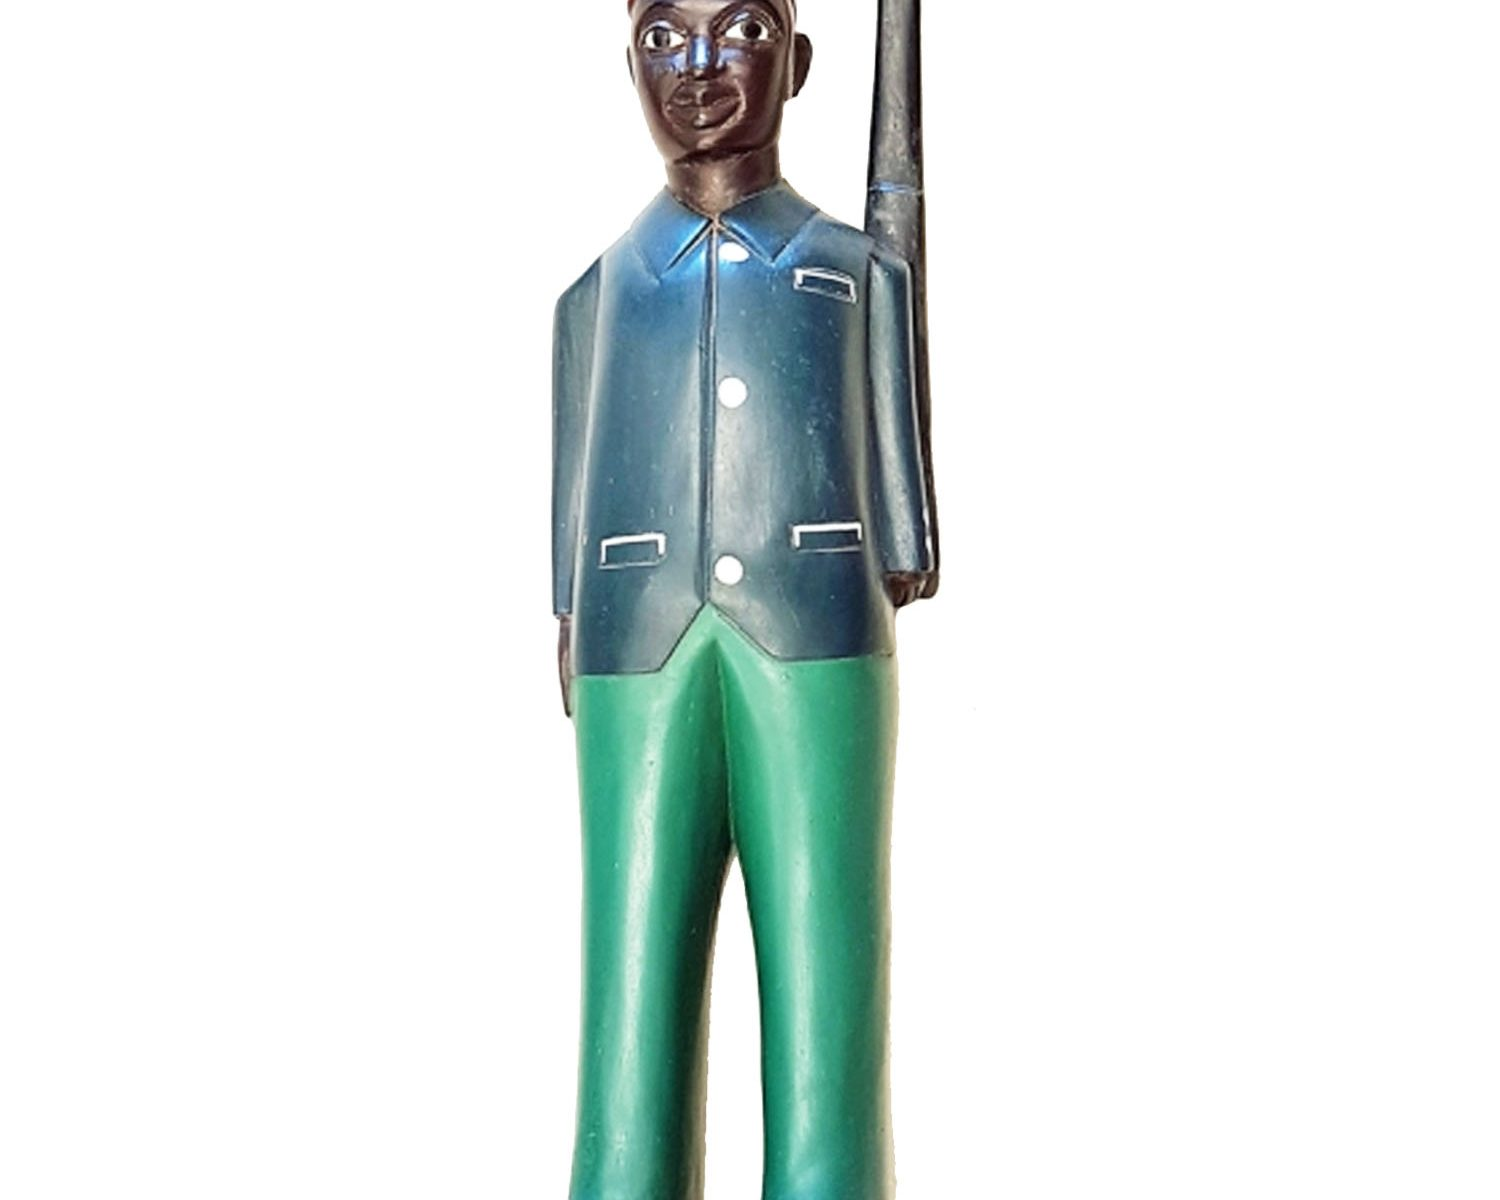 AFRICAN COLONIAL FIGURE GUARD